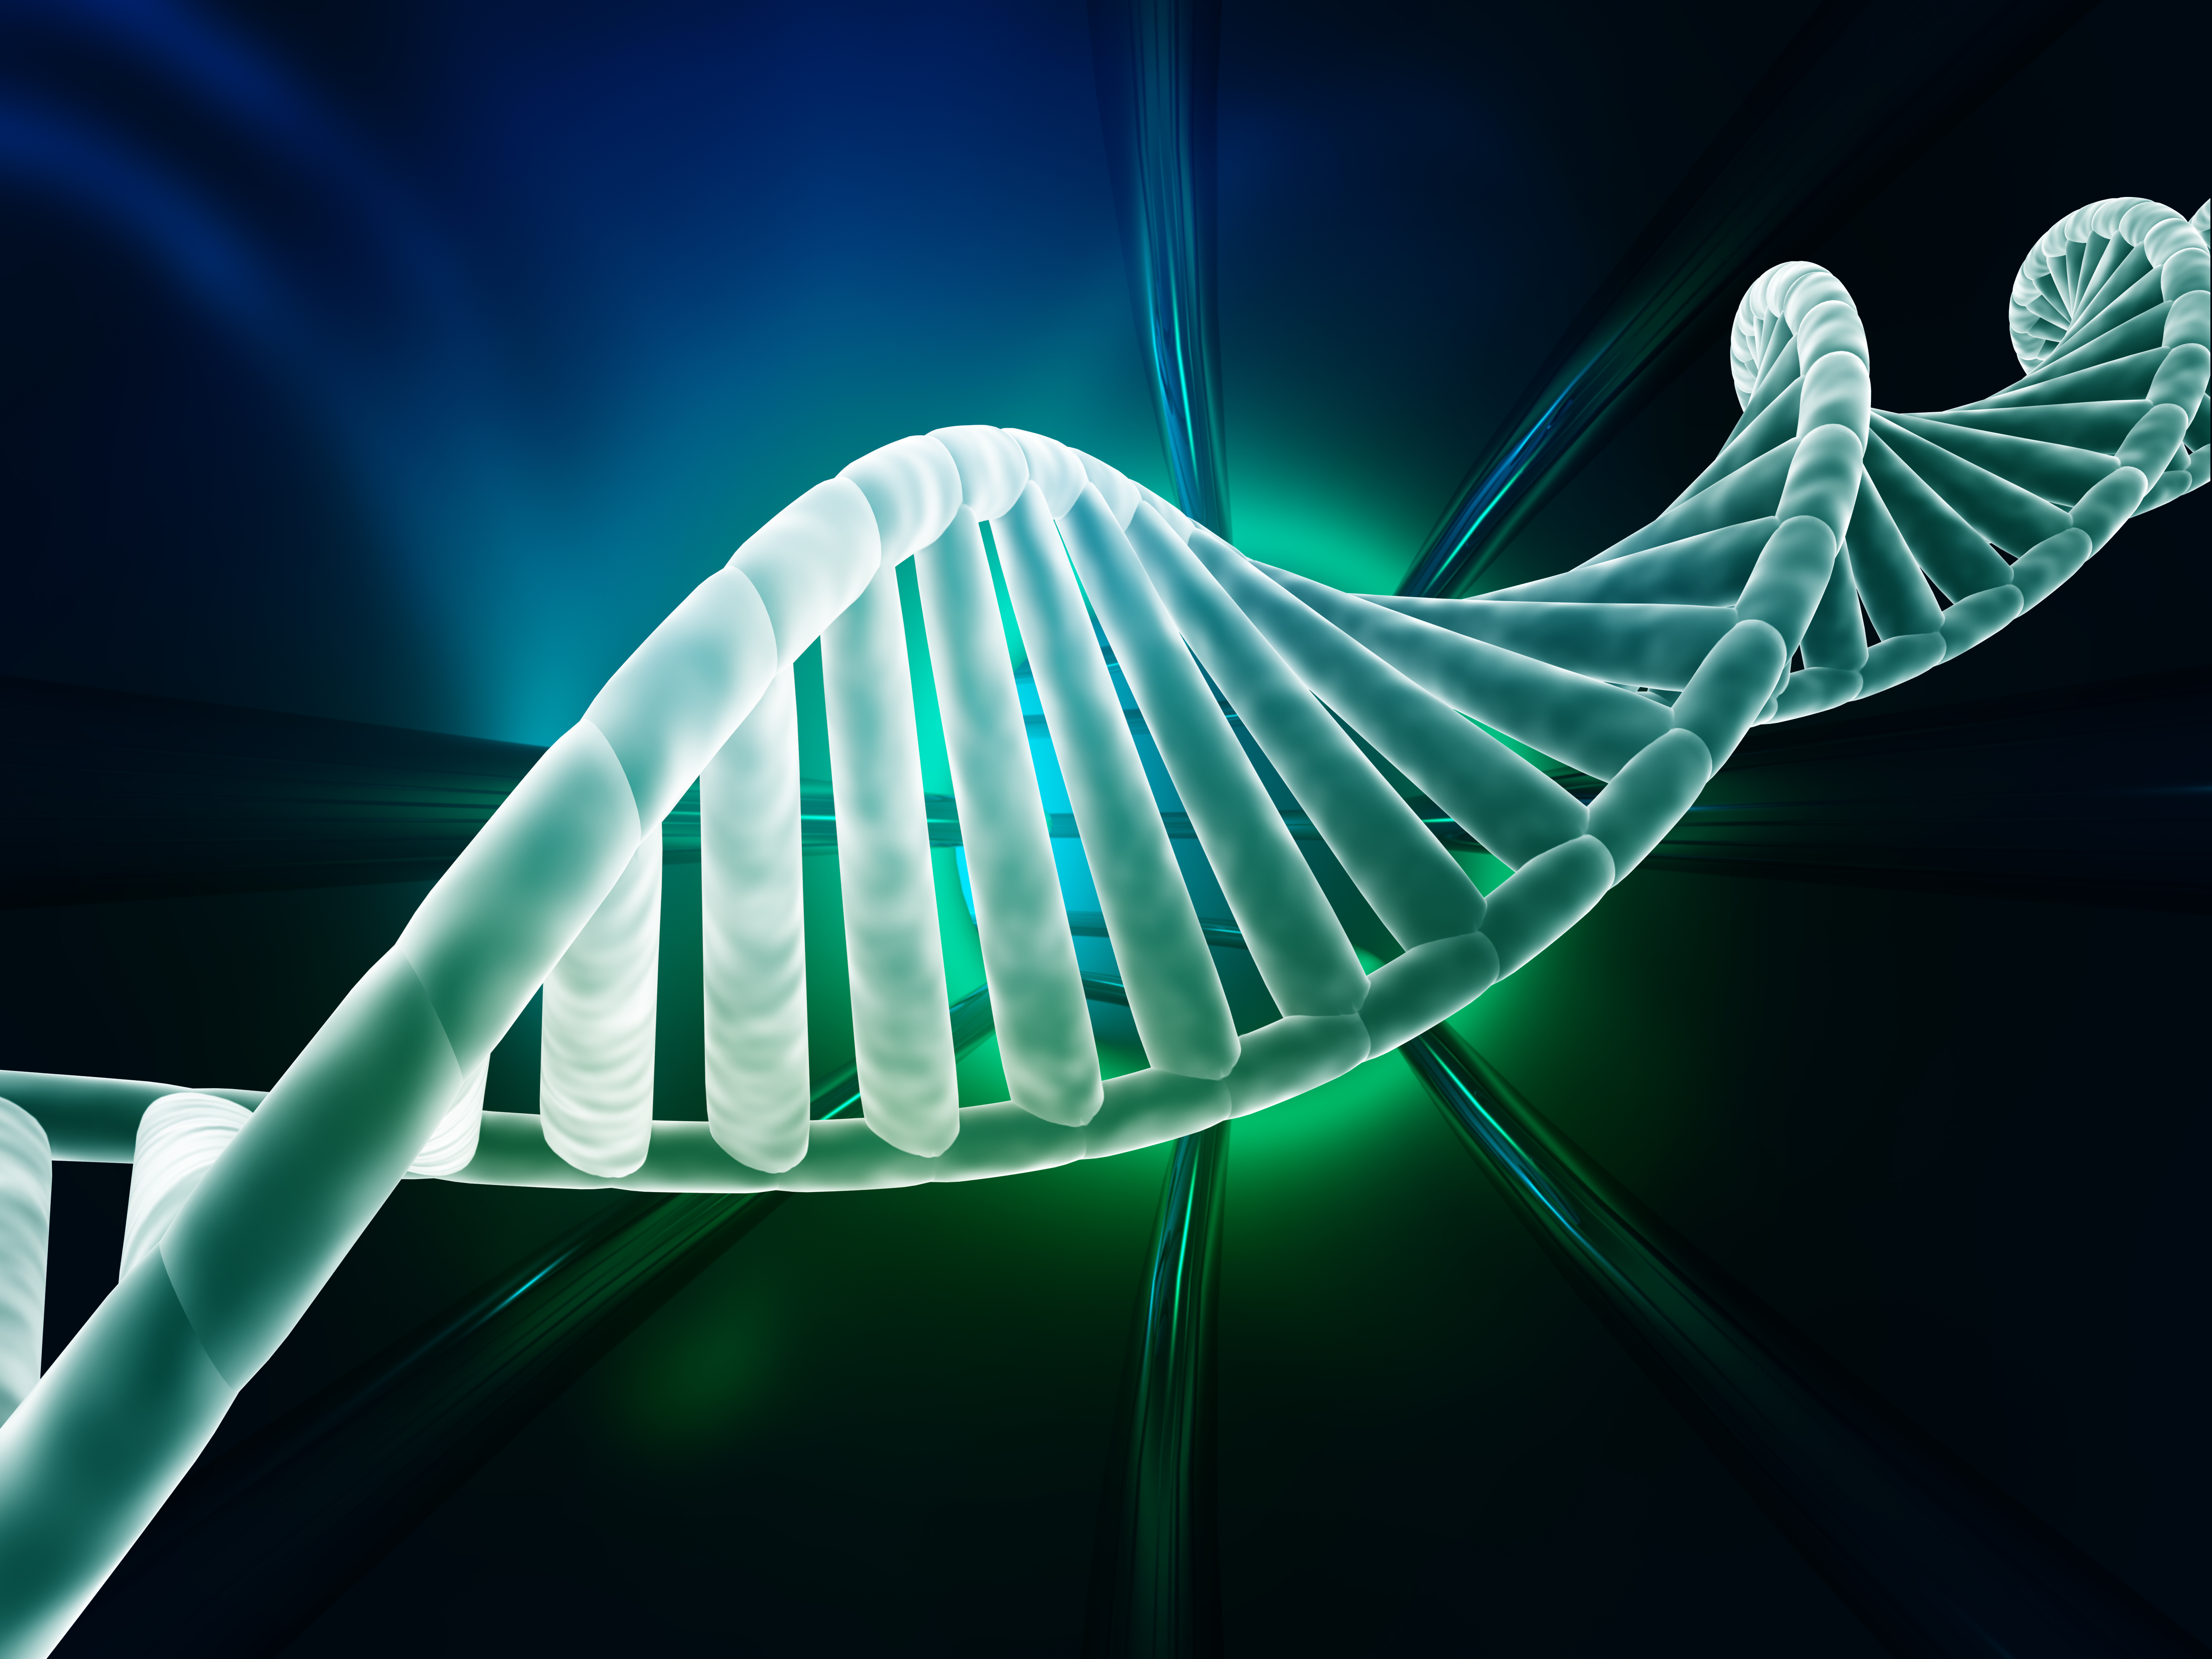 Cool Iphone Wallpaper Ideas Dna Structure 5k Retina Ultra Hd Wallpaper And Background